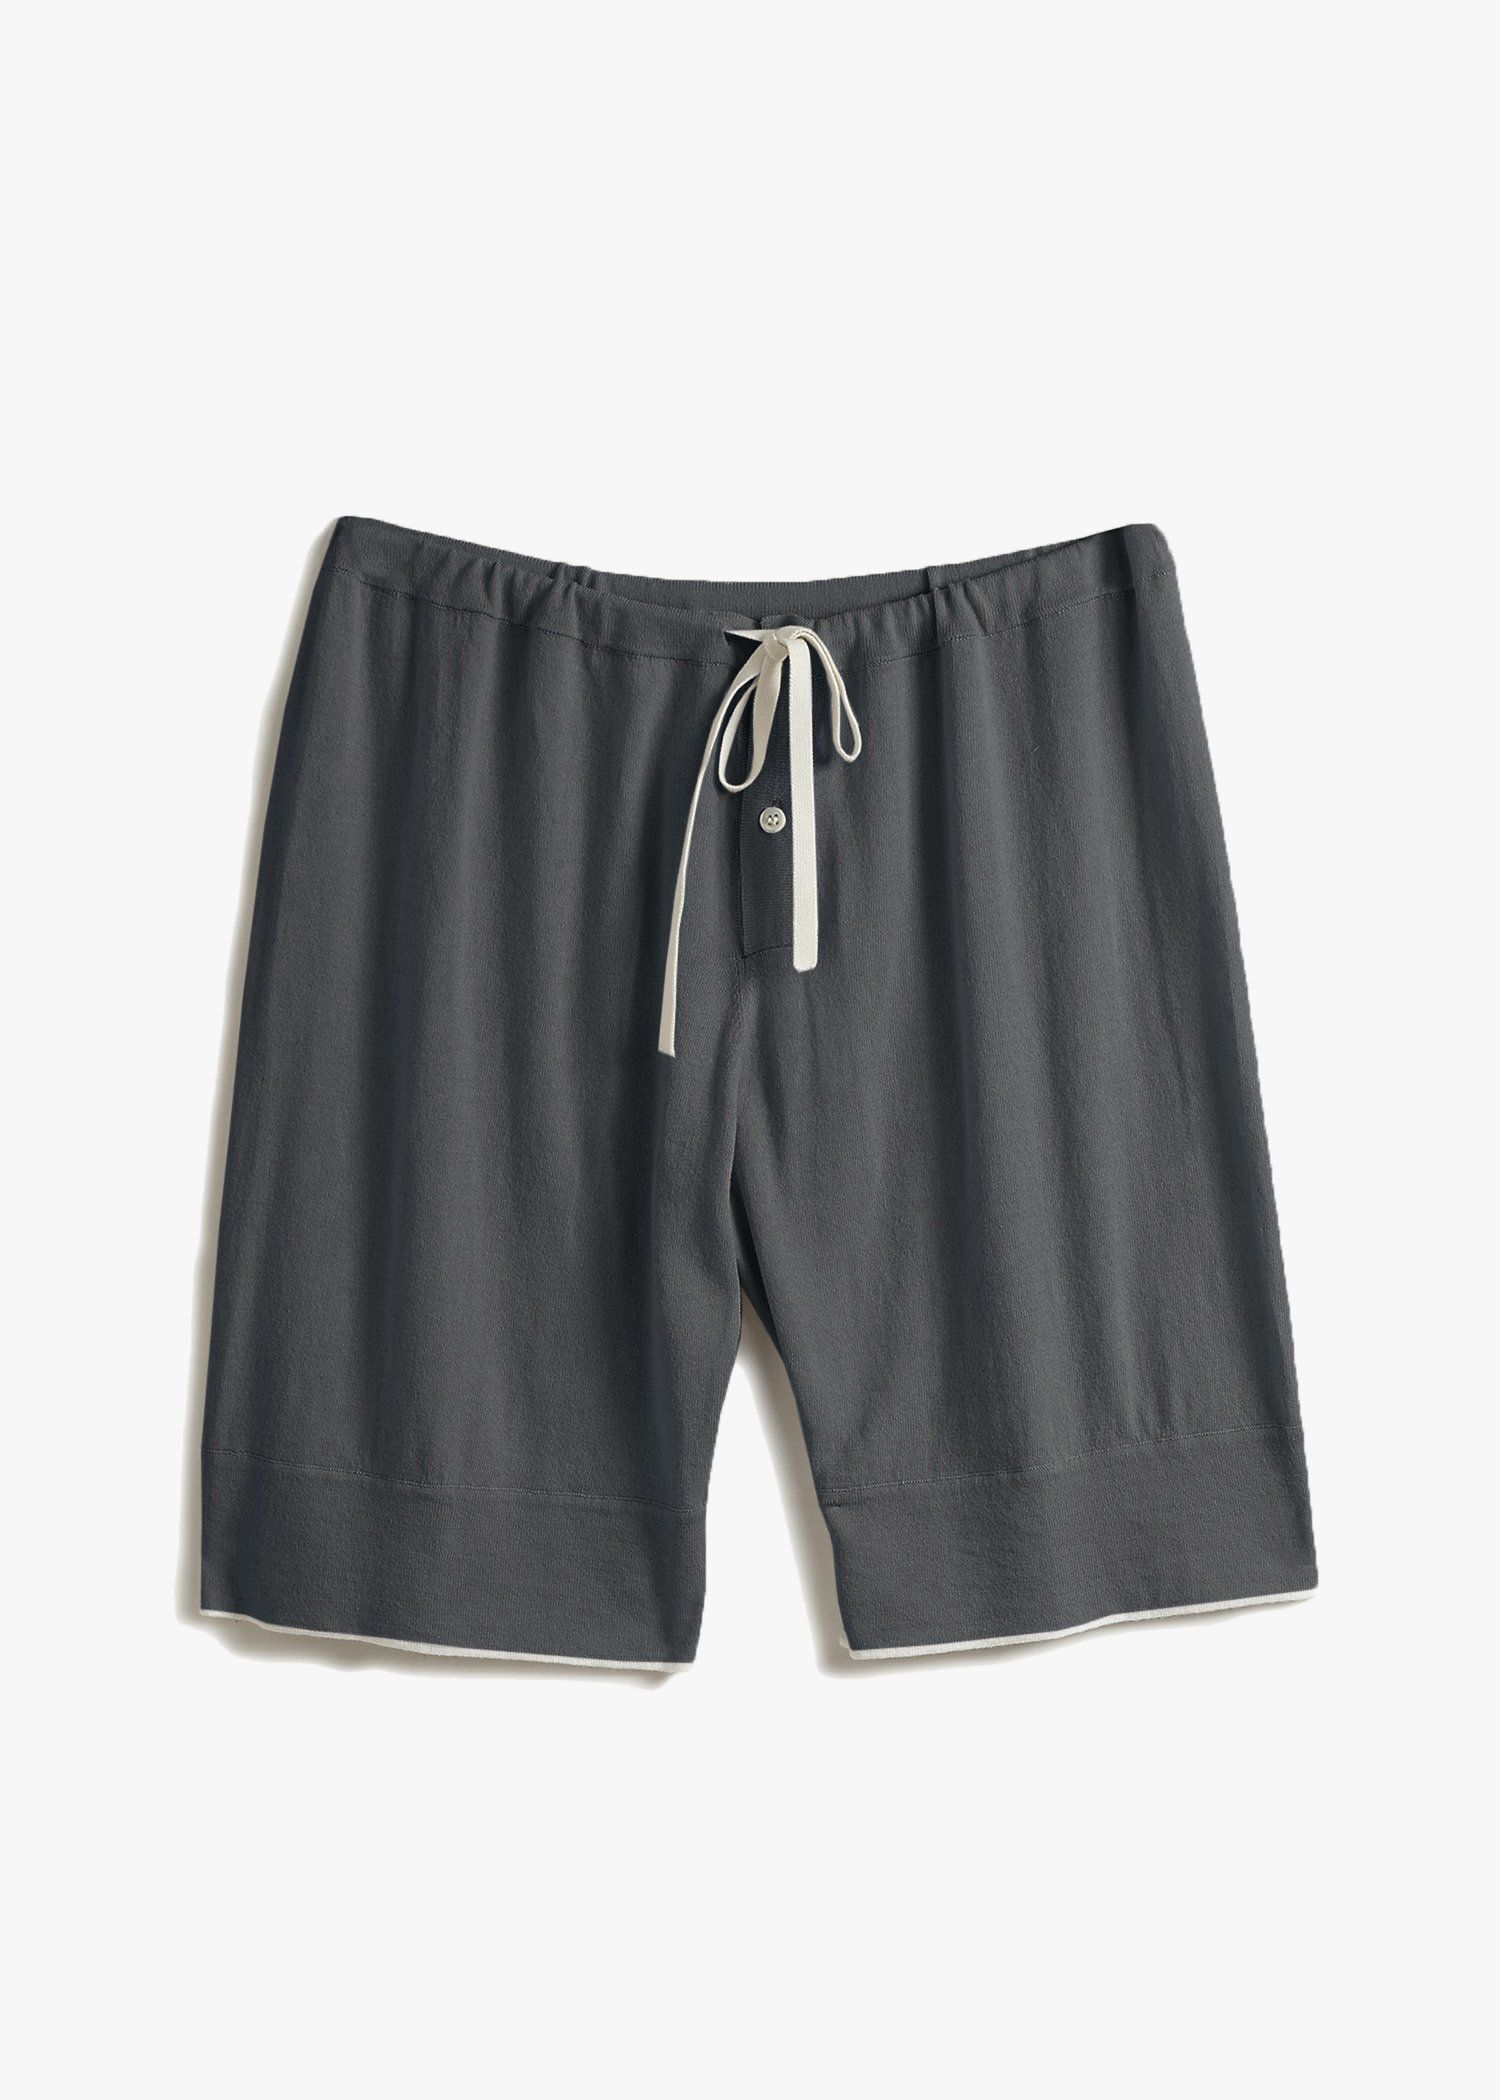 Sleep Shorts - M / Cadet